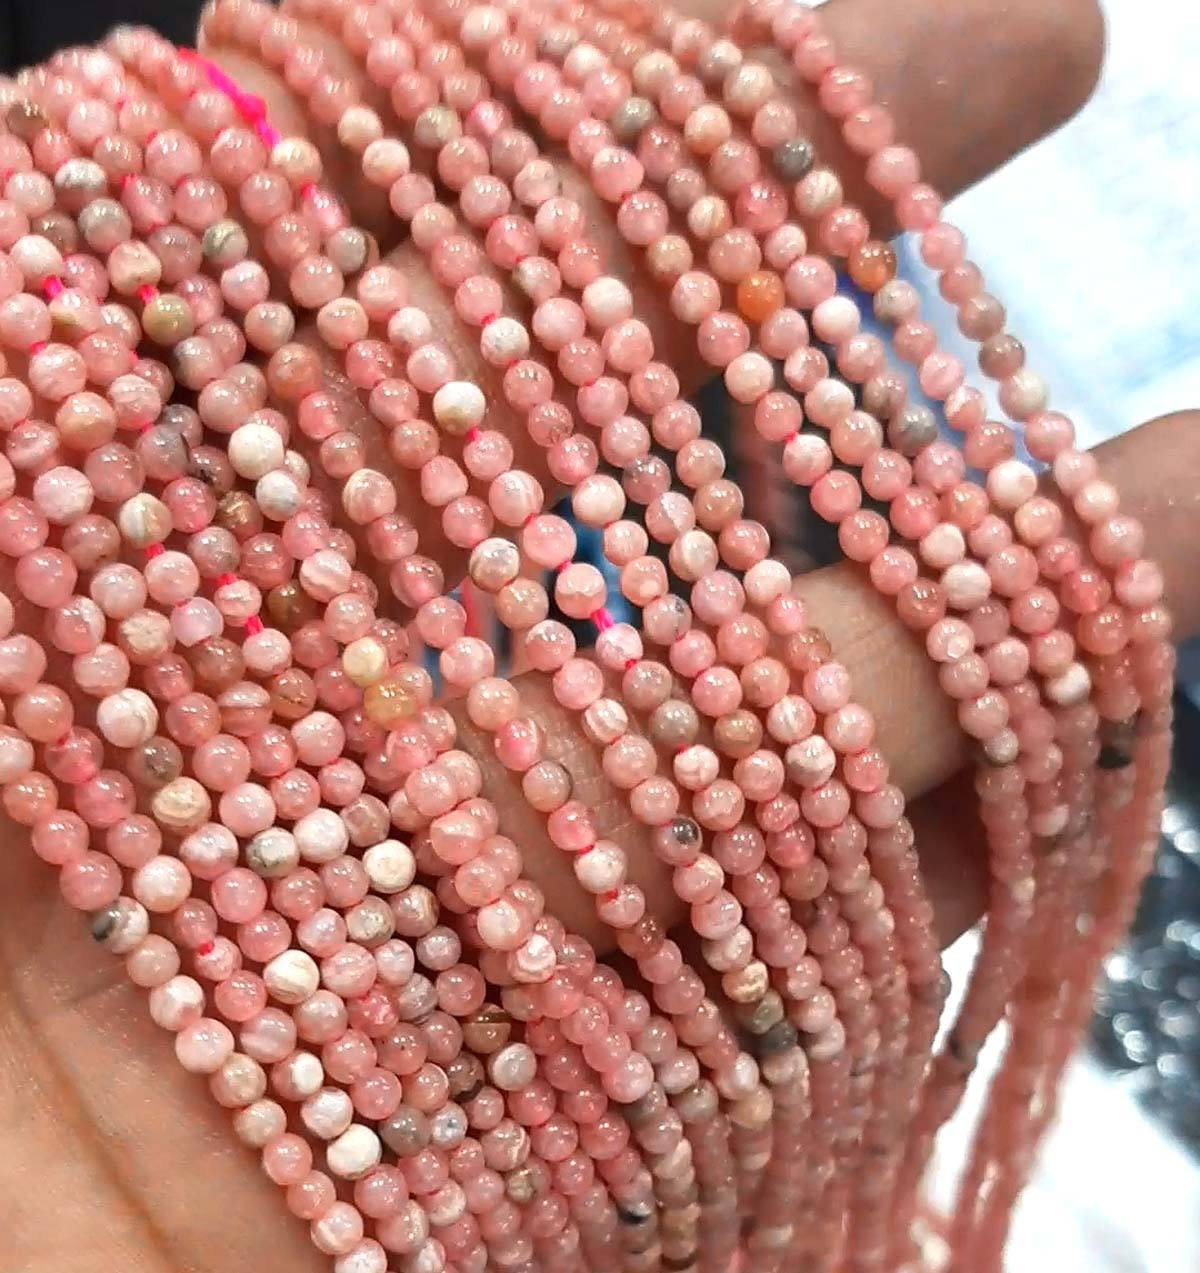 Polished rhodochrosite round cabochon 5mm to 6mm beads gemstone beads strands, antique jewelry stone wholesale supplies